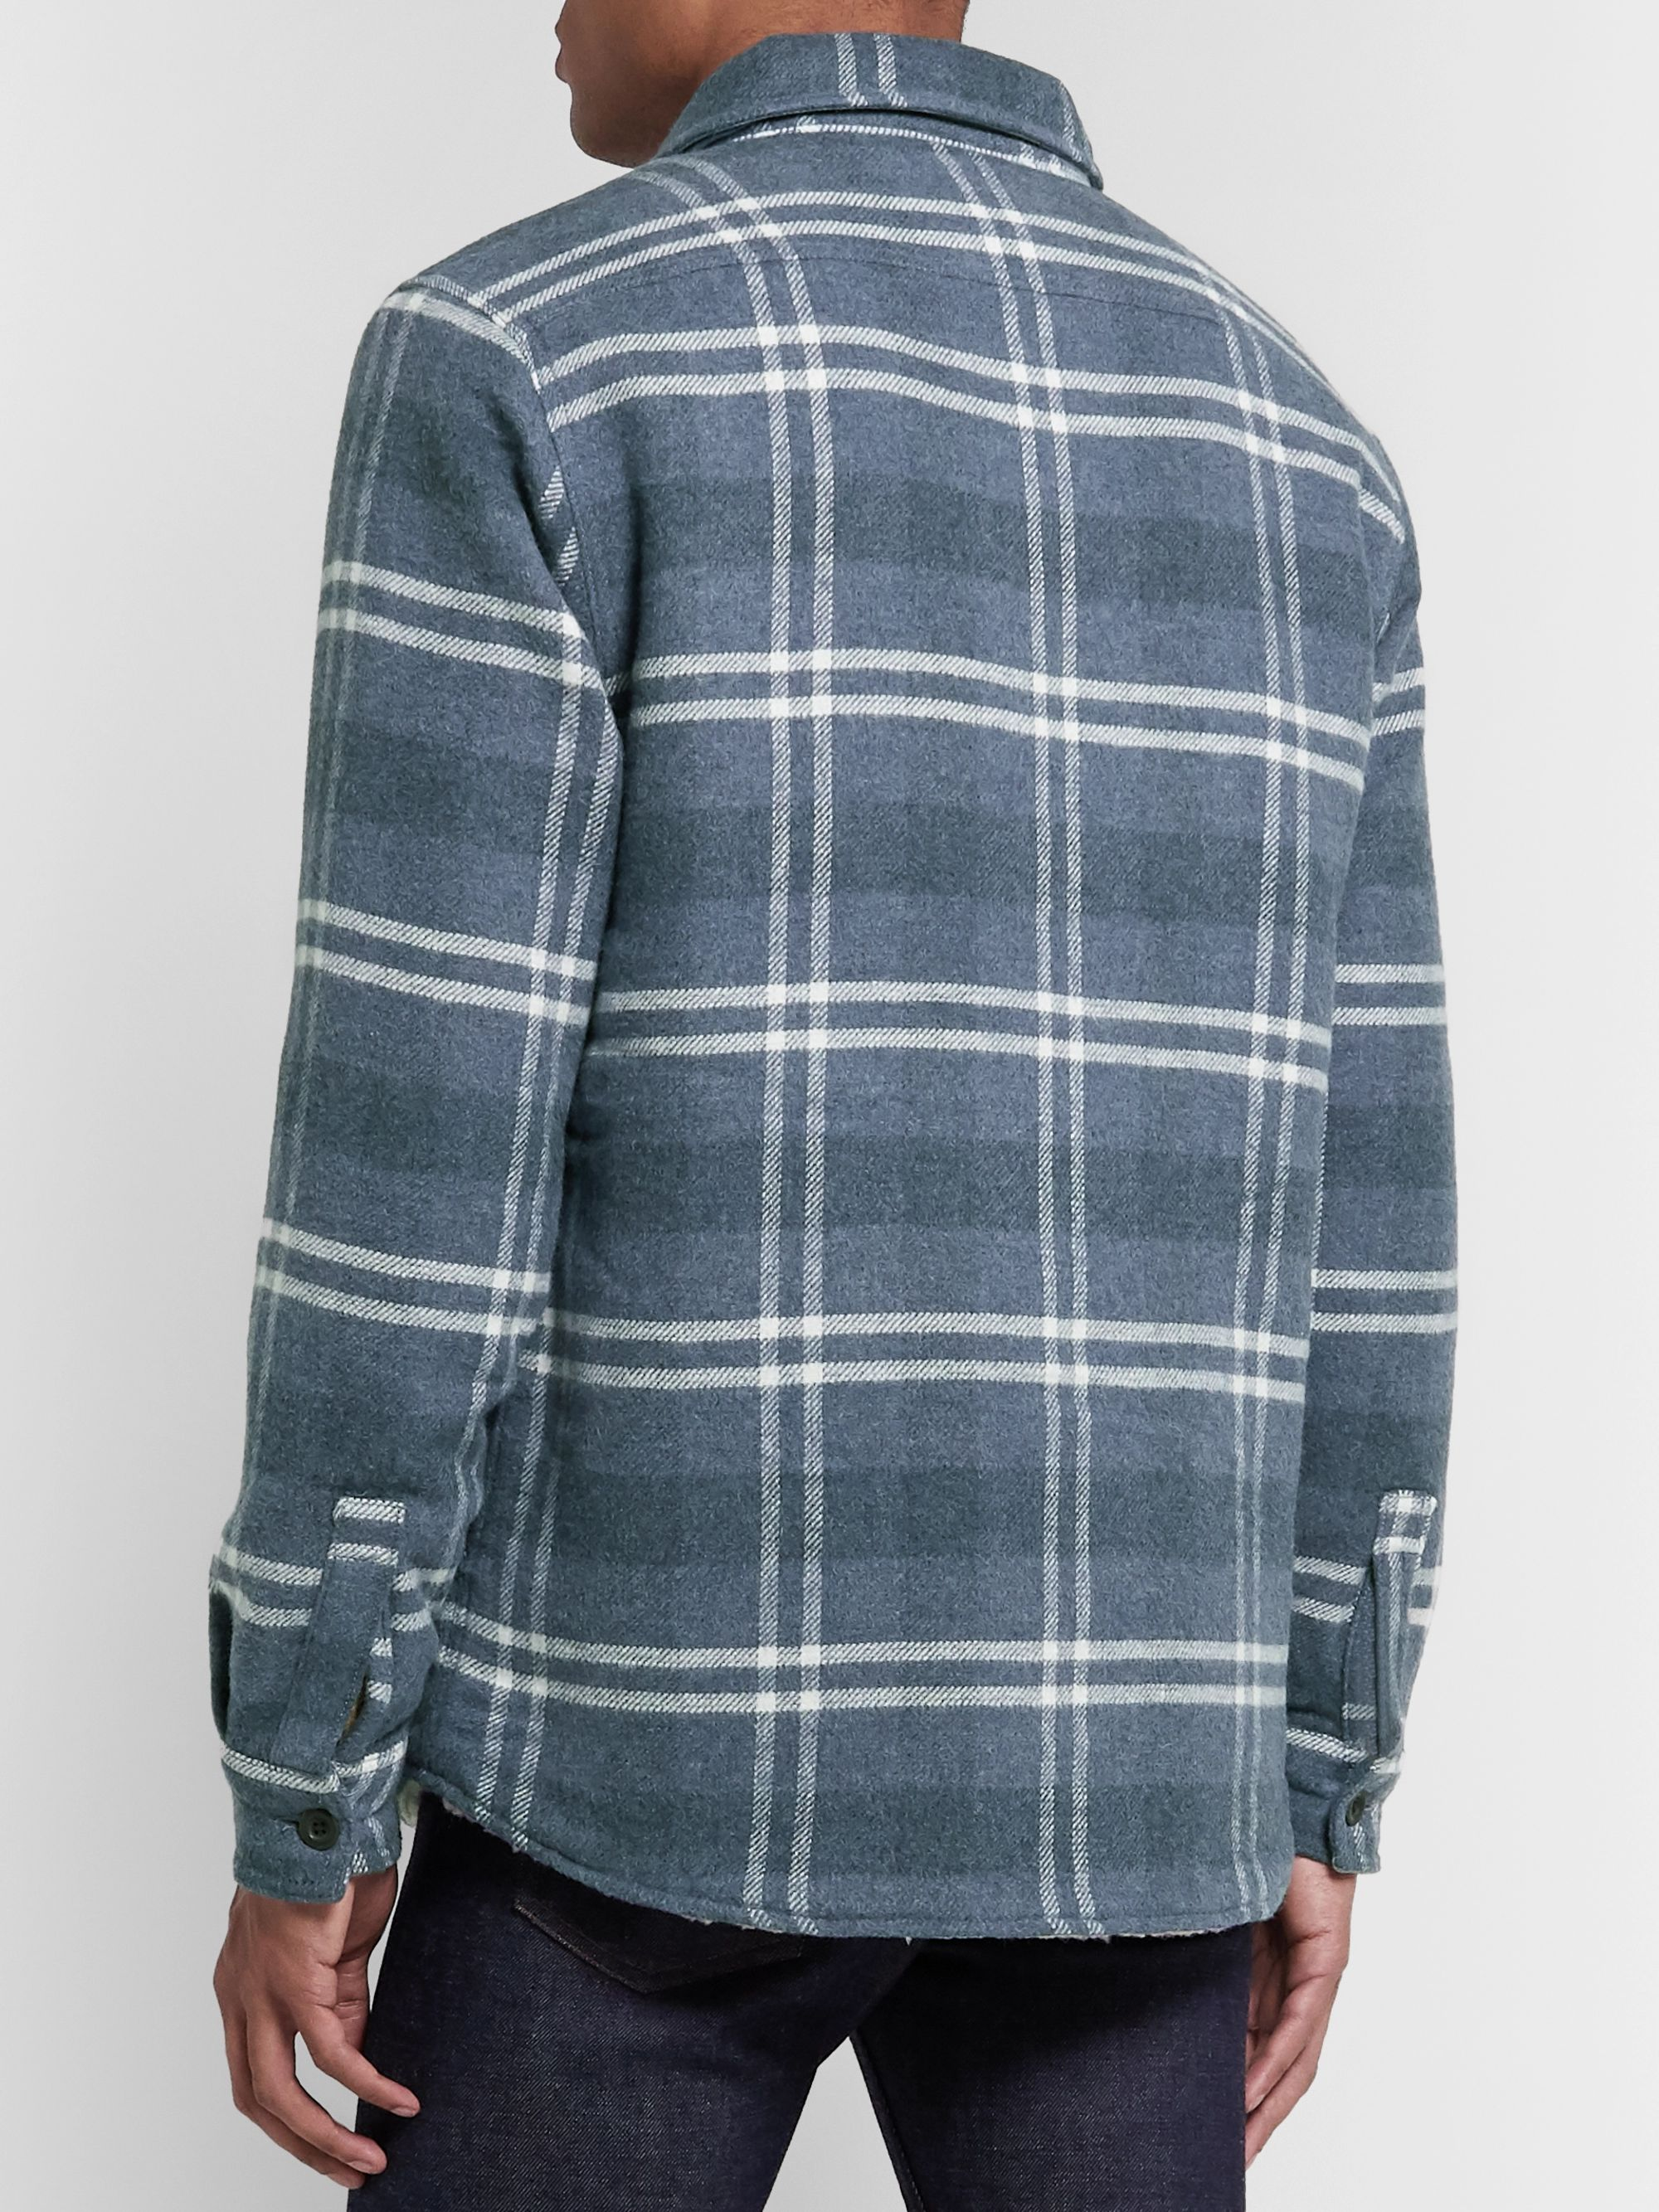 Faherty Faux Shearling-Lined Checked Cotton and Wool Shirt Jacket